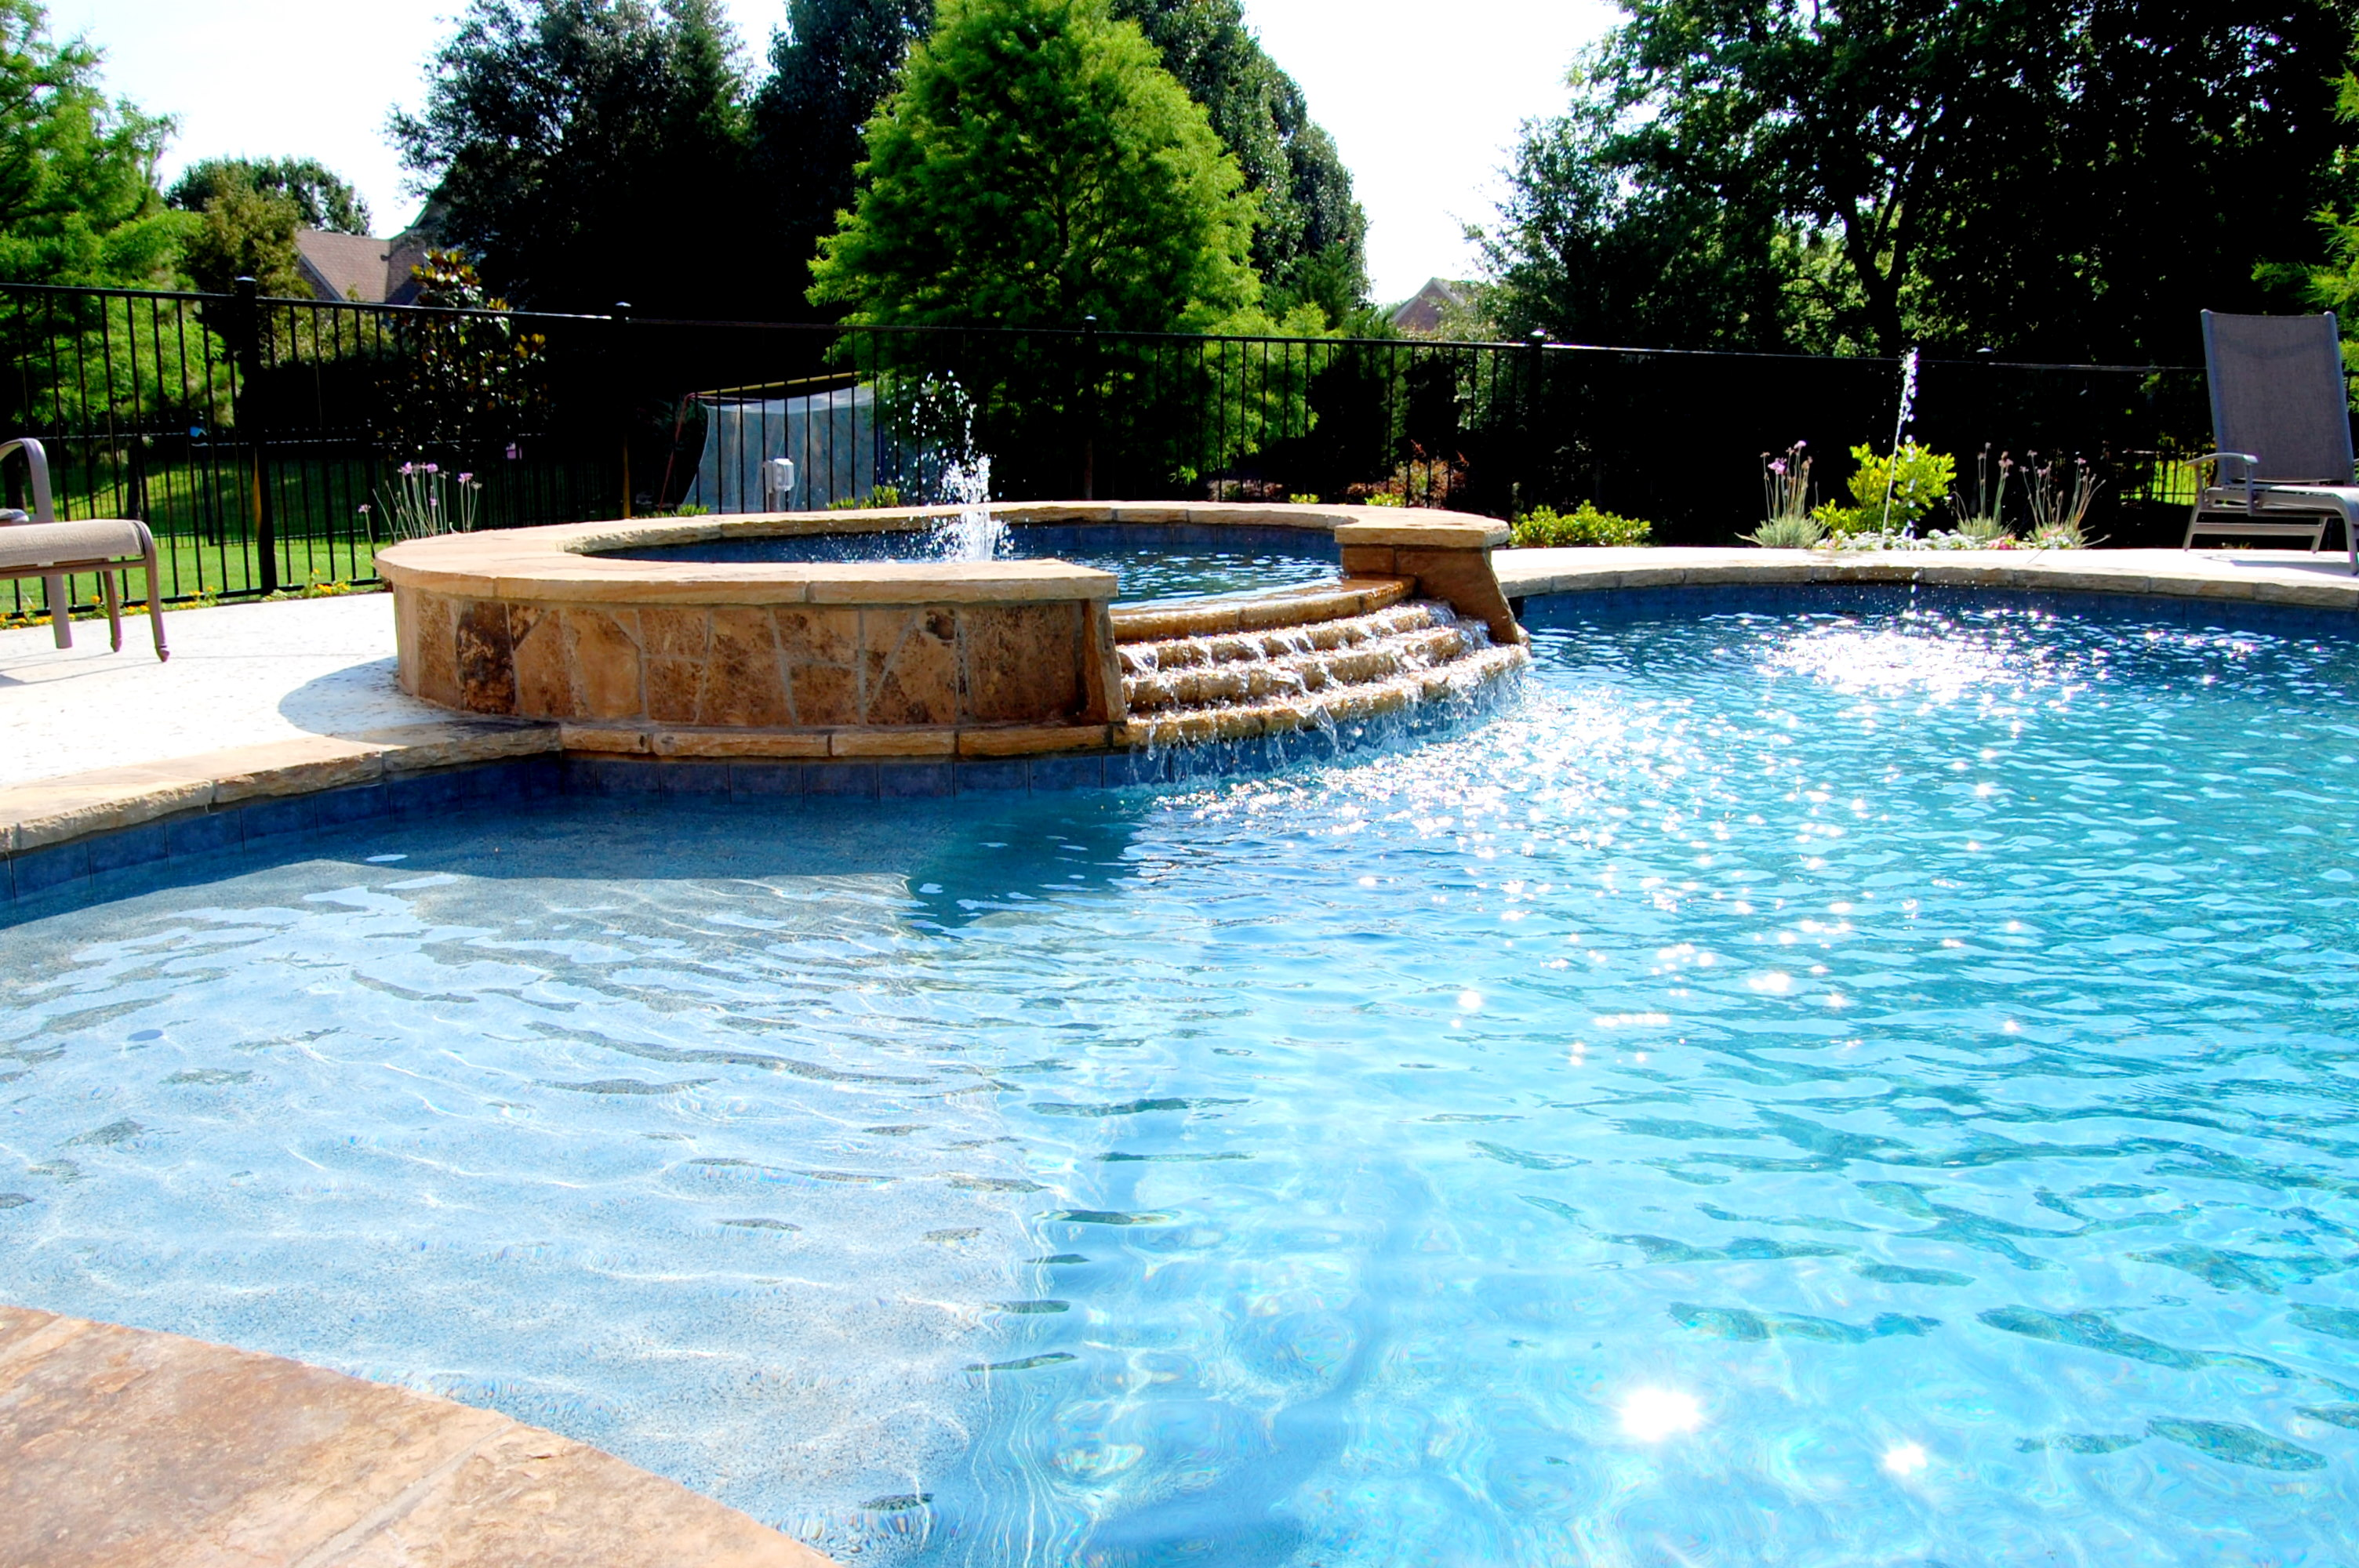 Pool cleaning service installation in arlington tx for Spa and pool